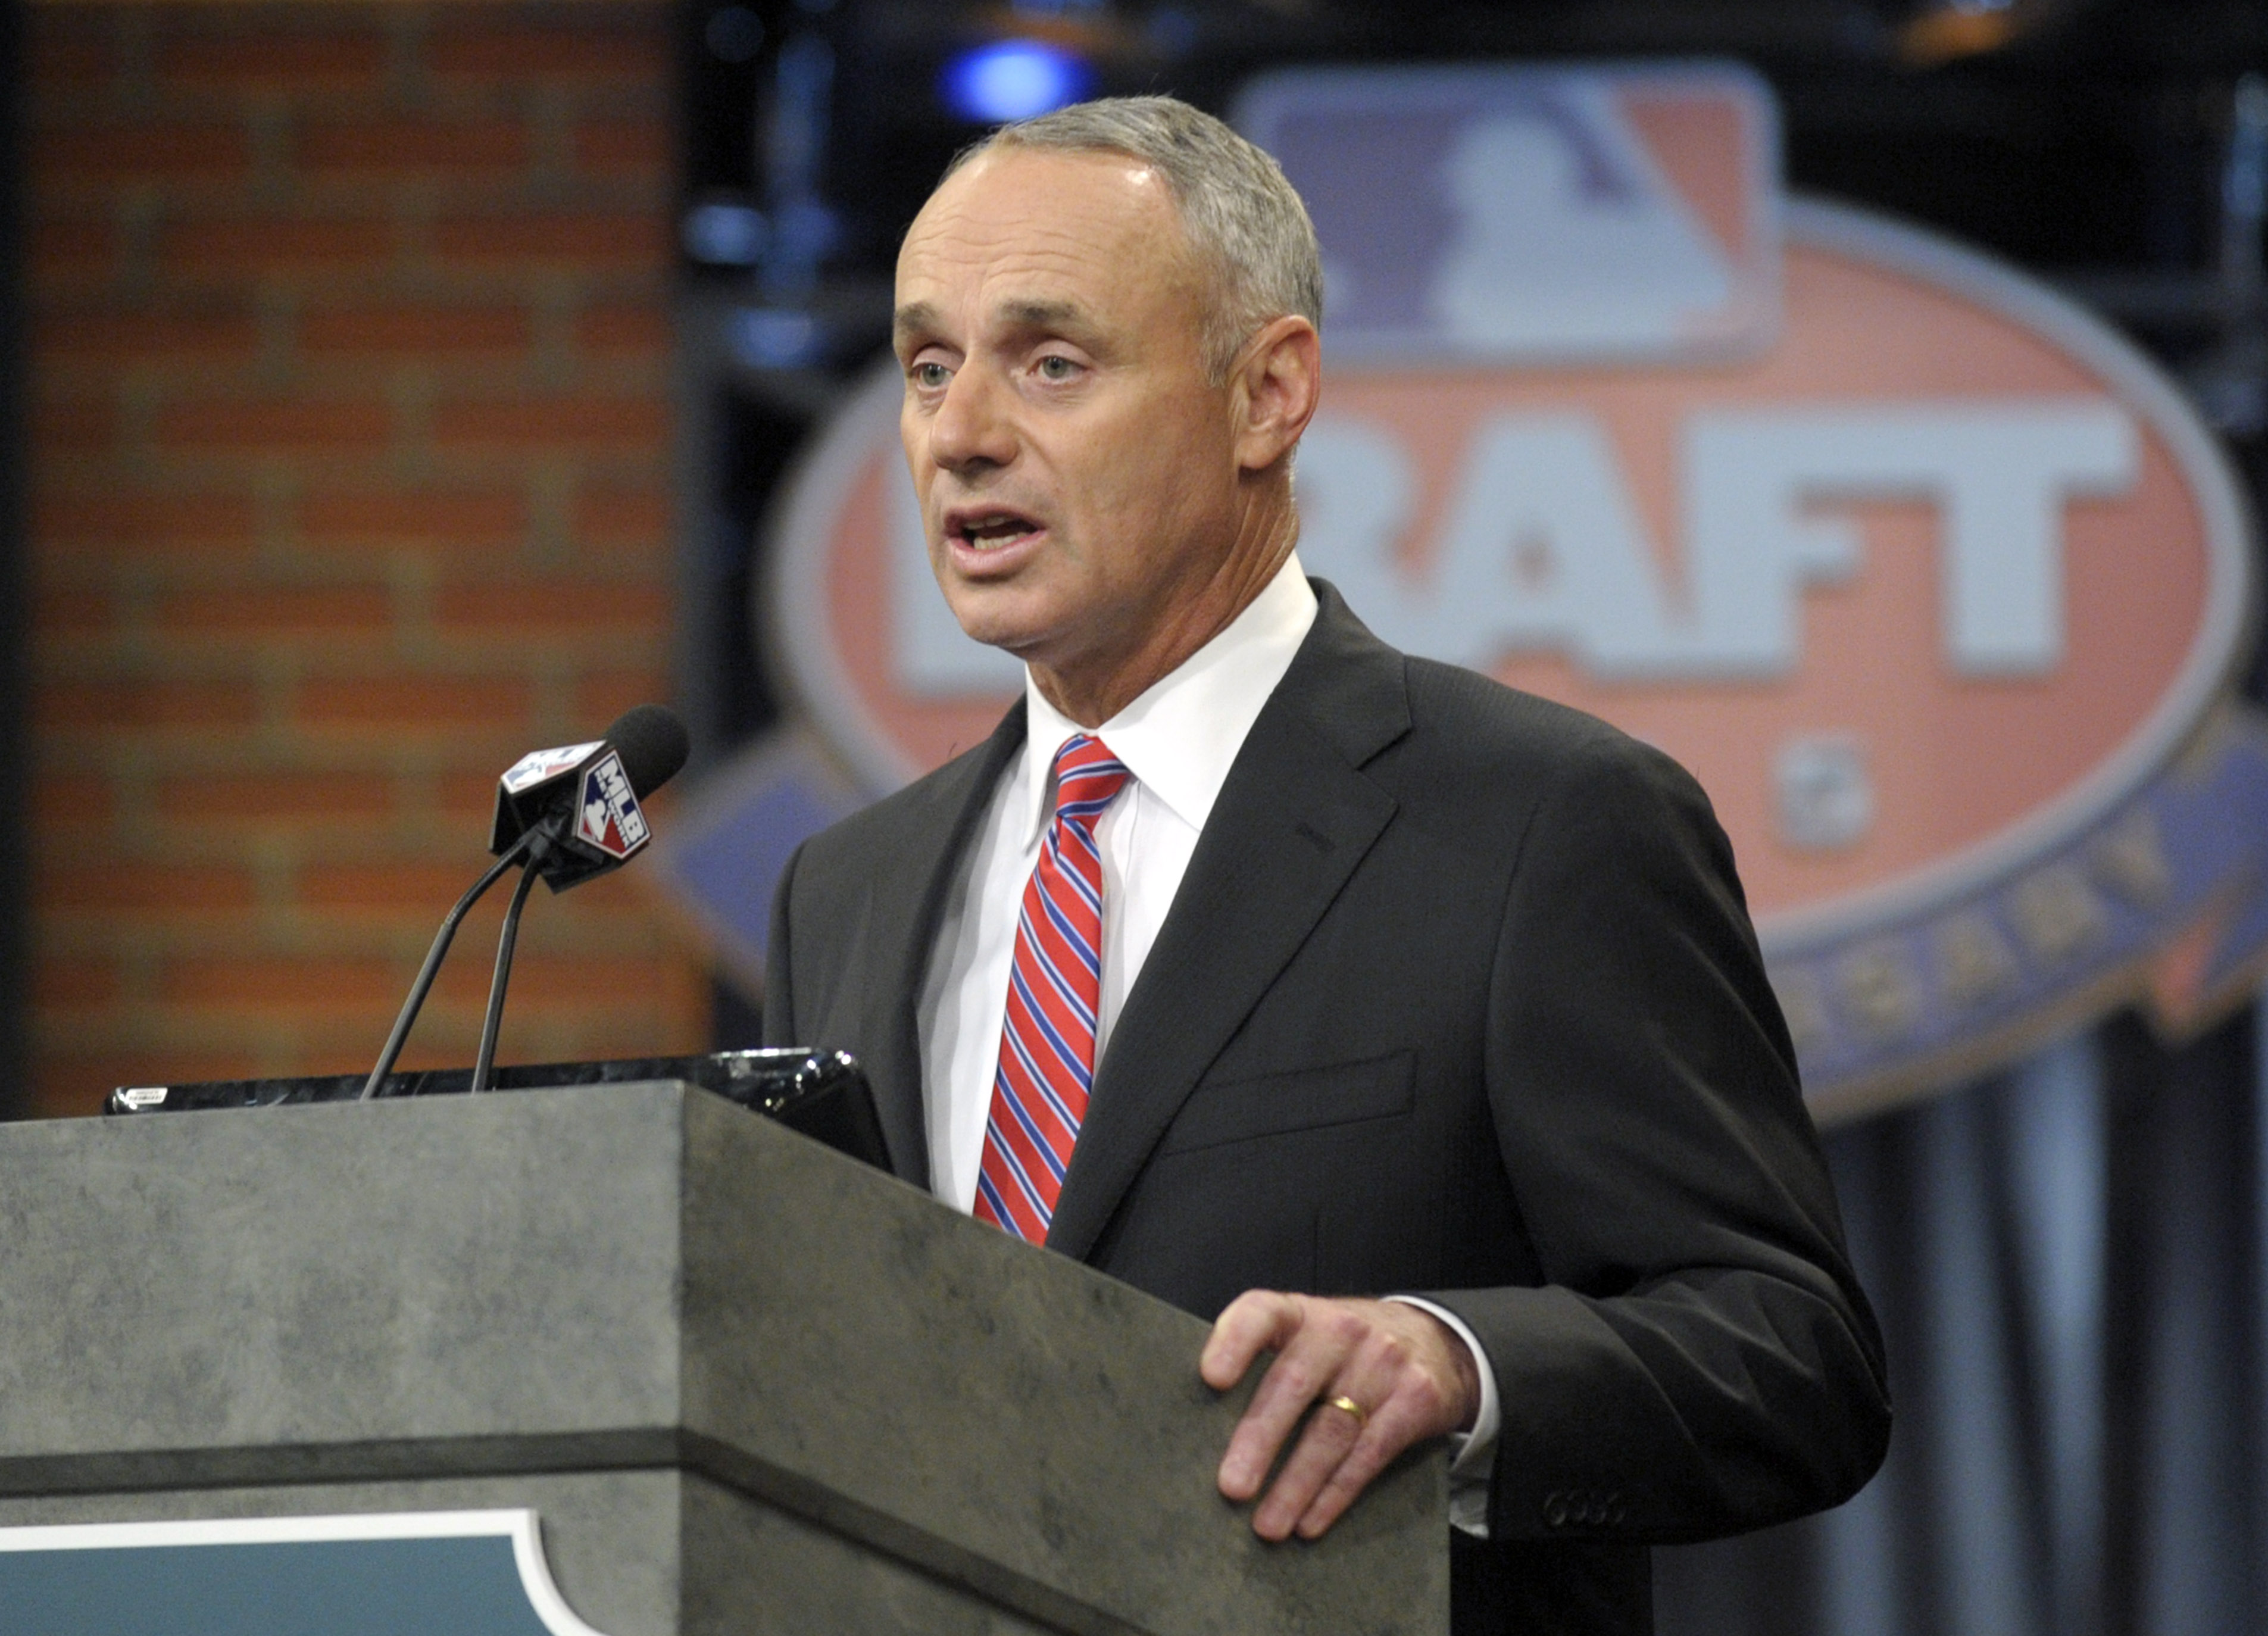 Commissioner of Major League Baseball Rob Manfred announces the selections at the 2015 MLB baseball draft Monday, June 8, 2015, in Secaucus, N.J. (AP Photo/Bill Kostroun)